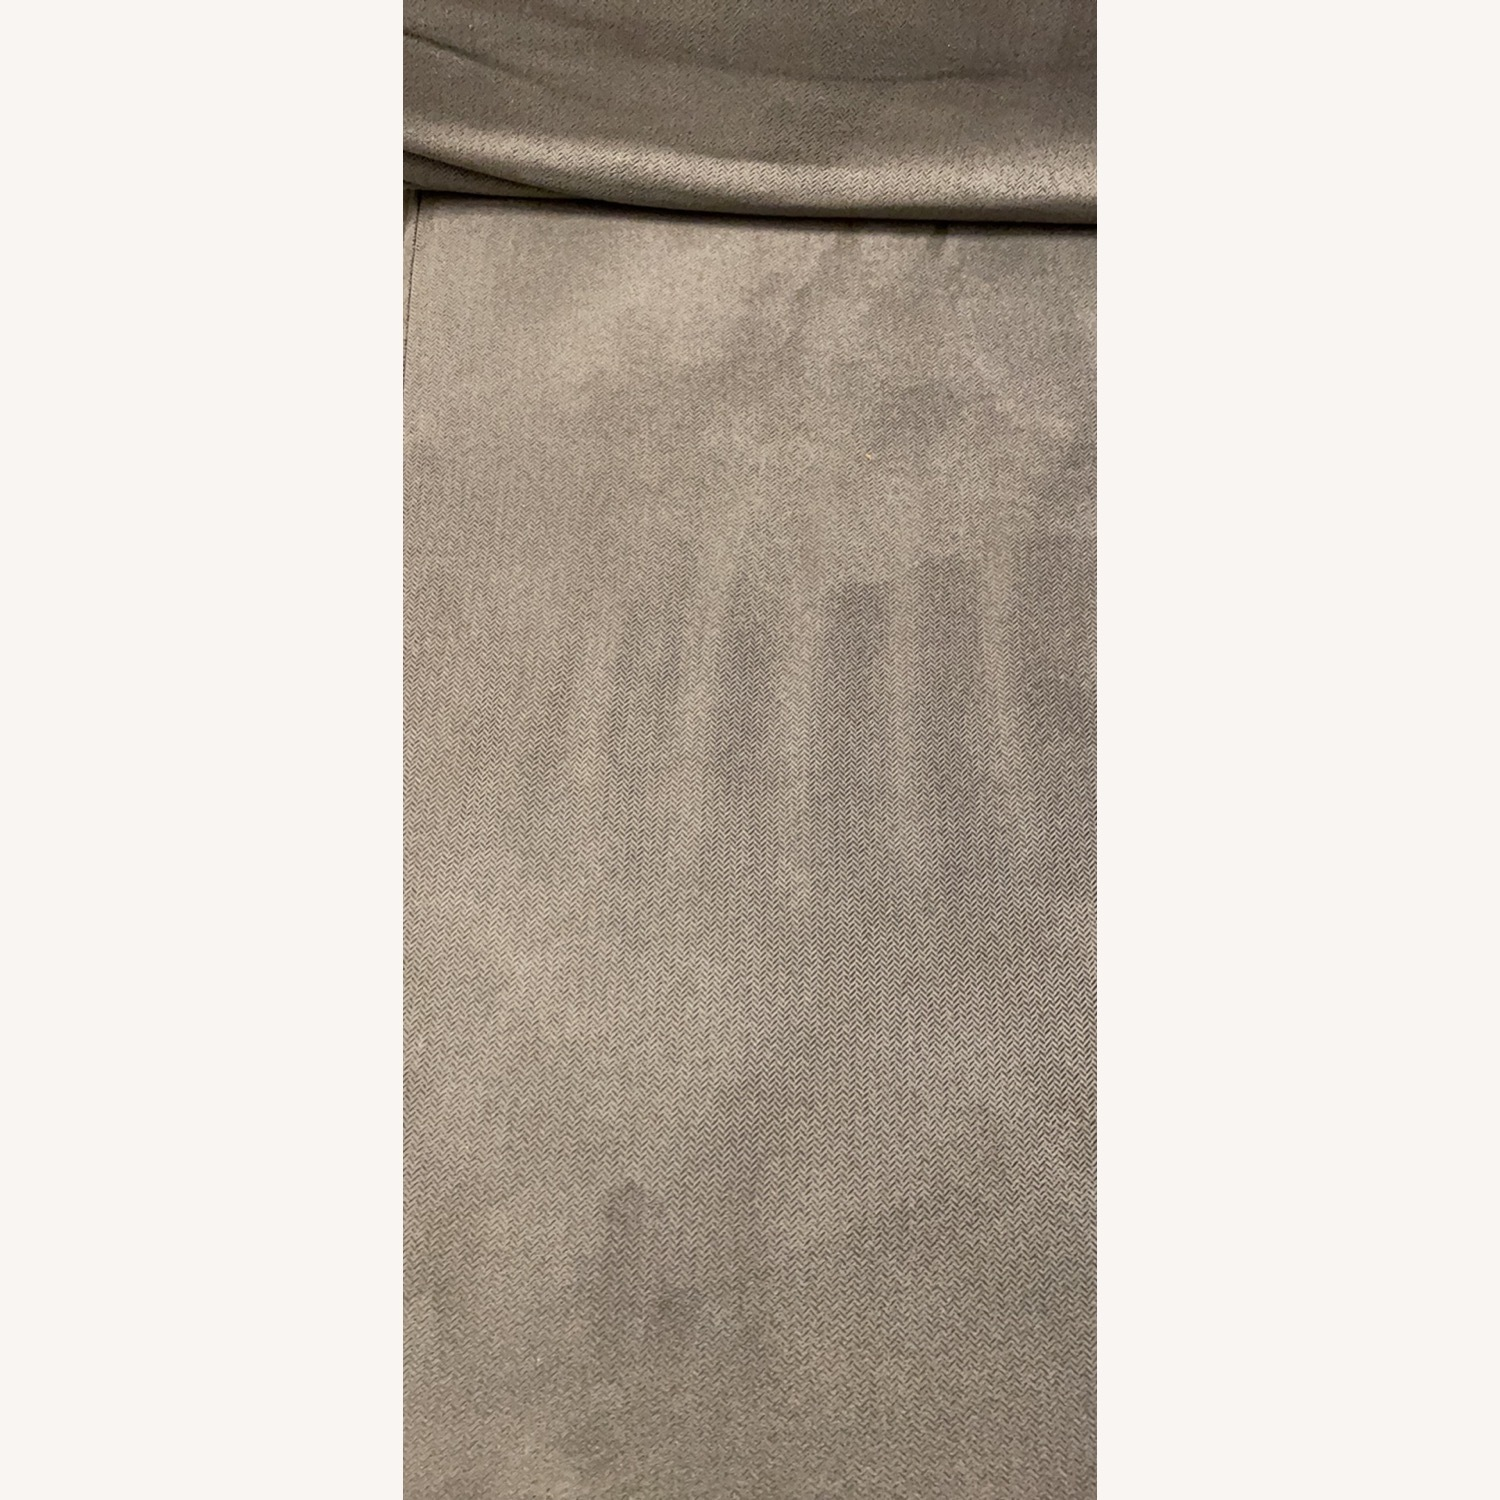 West Elm Tillary Couch - image-6